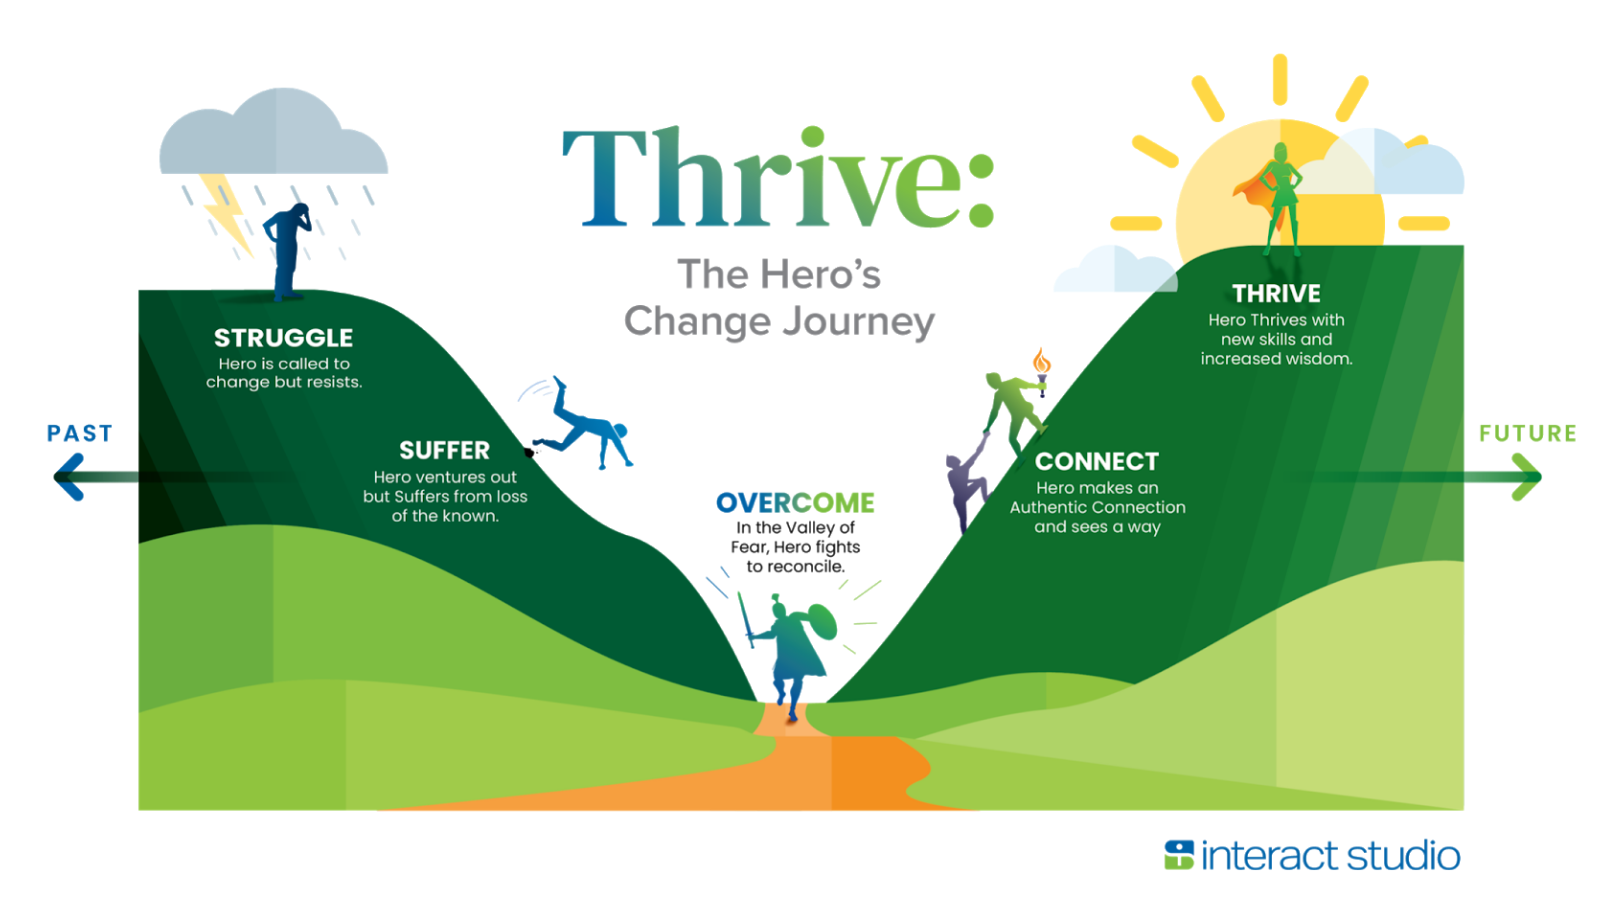 Hero's Change Journey - Struggle then Suffer then Overcome then Connect then Thrive - Spark your resilience and ability to thrive.